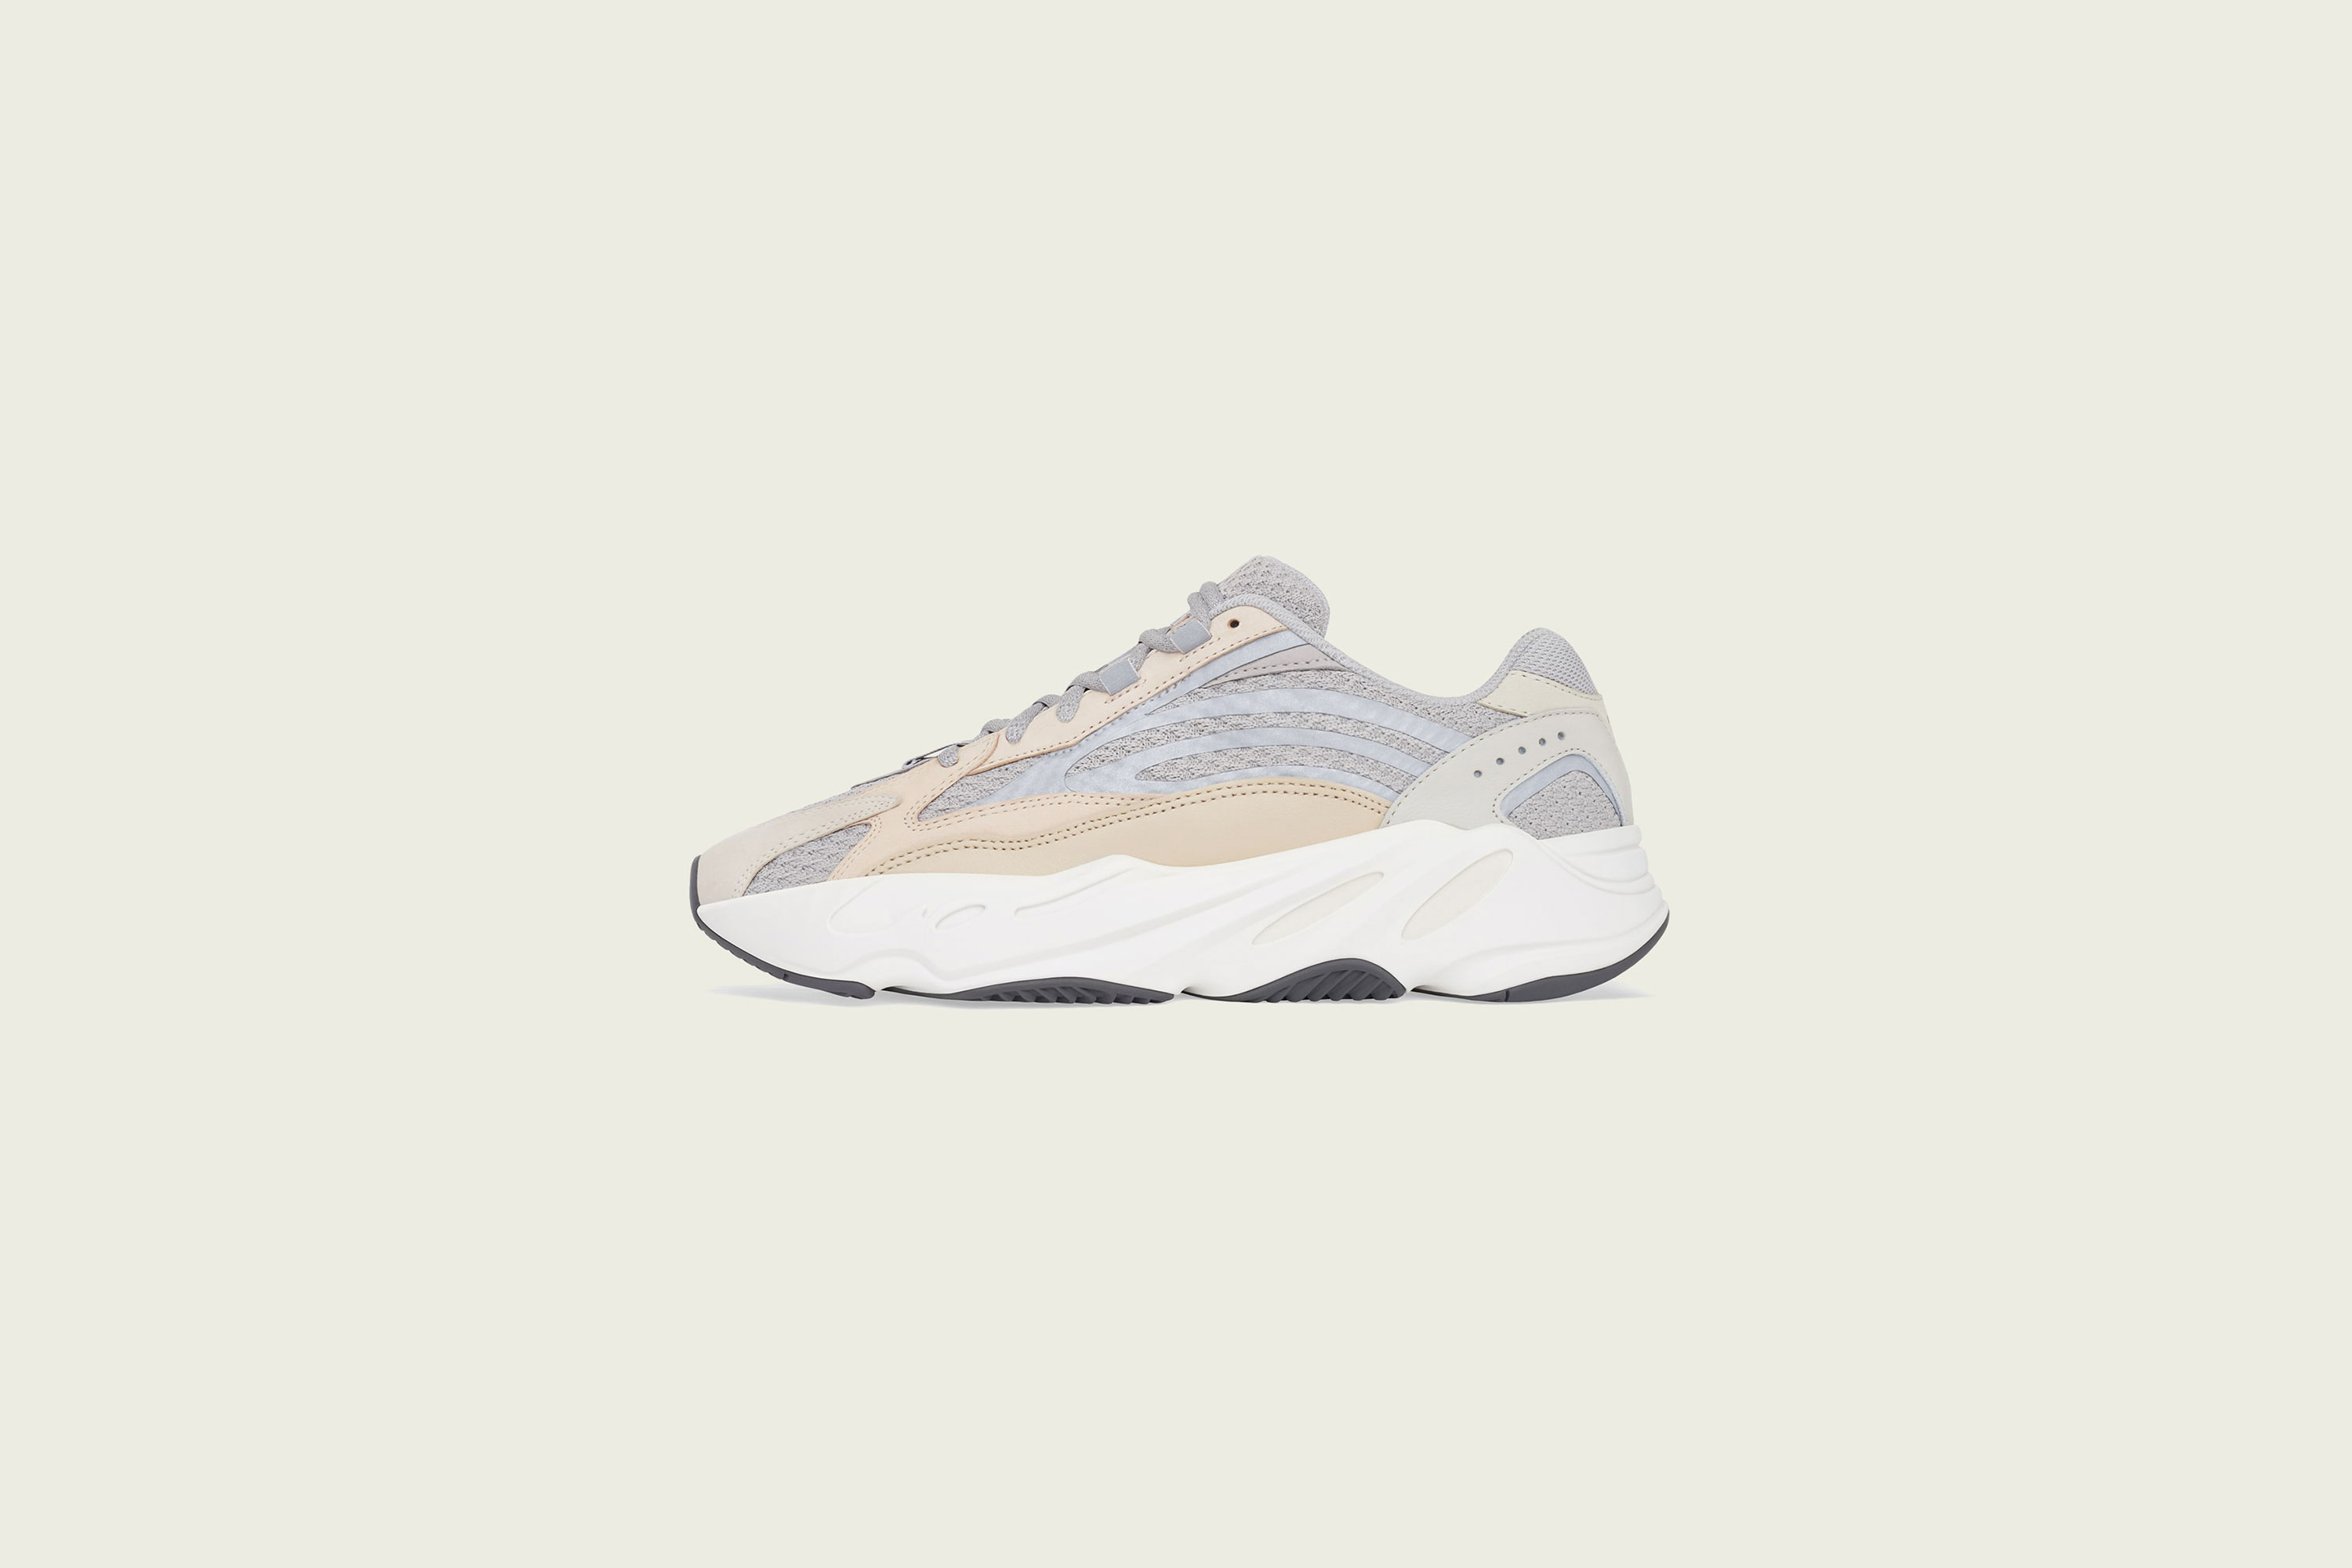 Up There Launches - adidas Originals Yeezy Boost 700v2 'Cream'